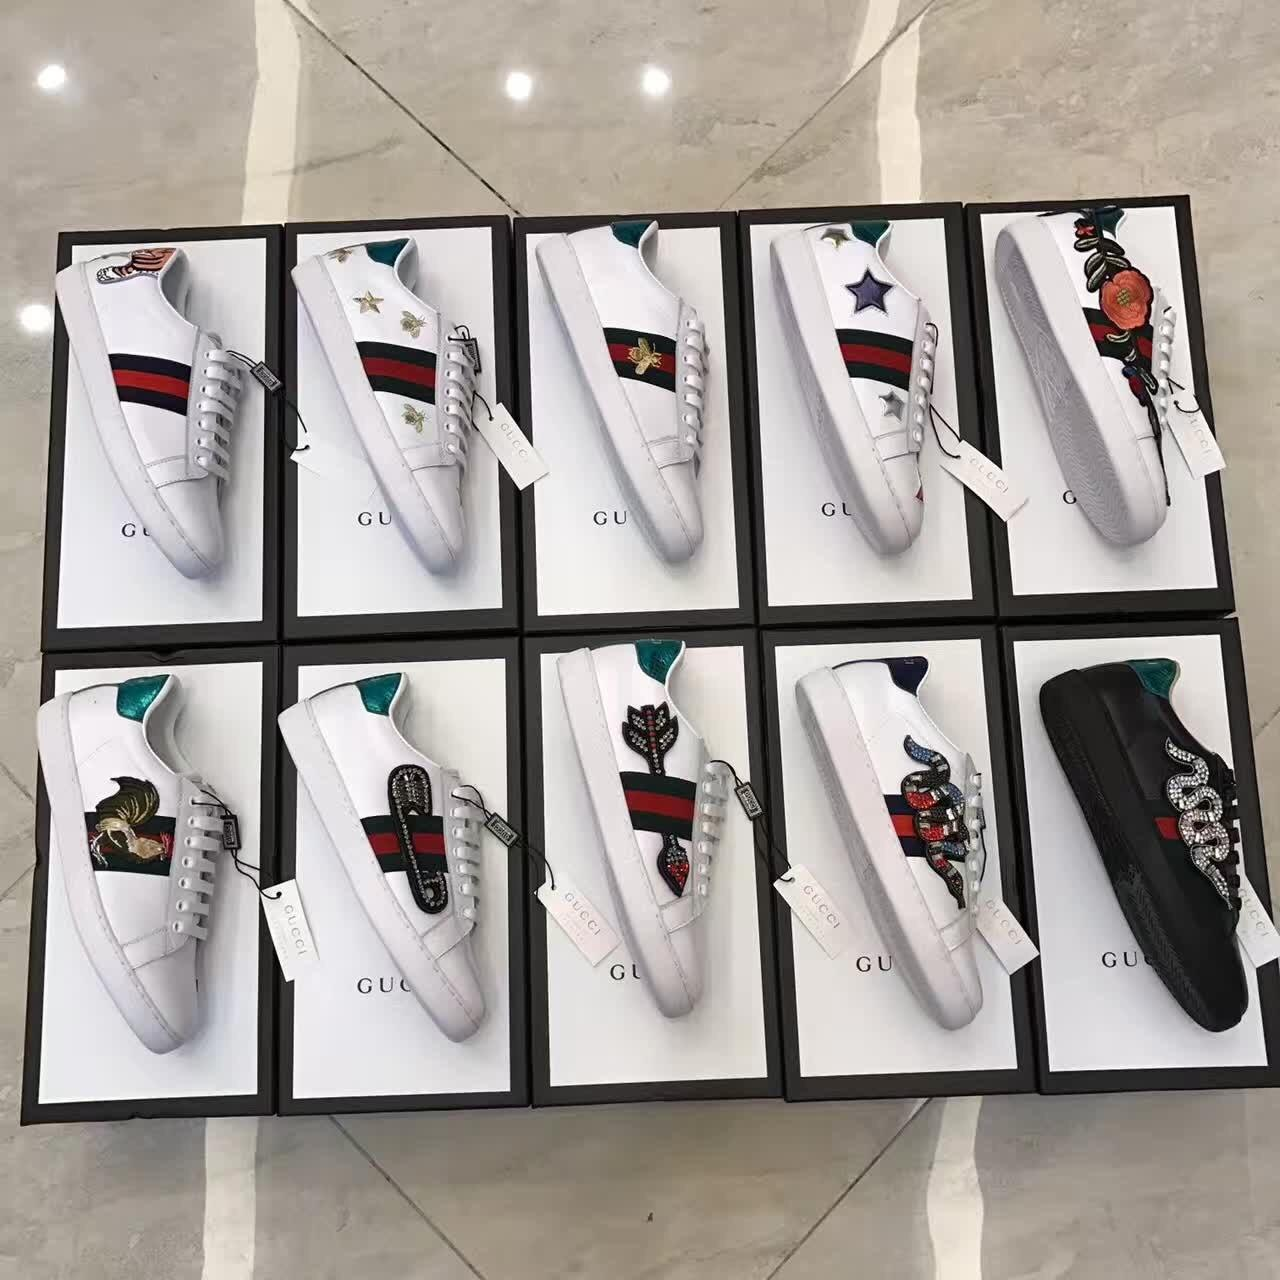 Buy cheap Gucci - zapatillas bajas Ace bordadas - mujer - Cuero/rubber , 2017 Newest Arrivals For Sale from Wholesalers